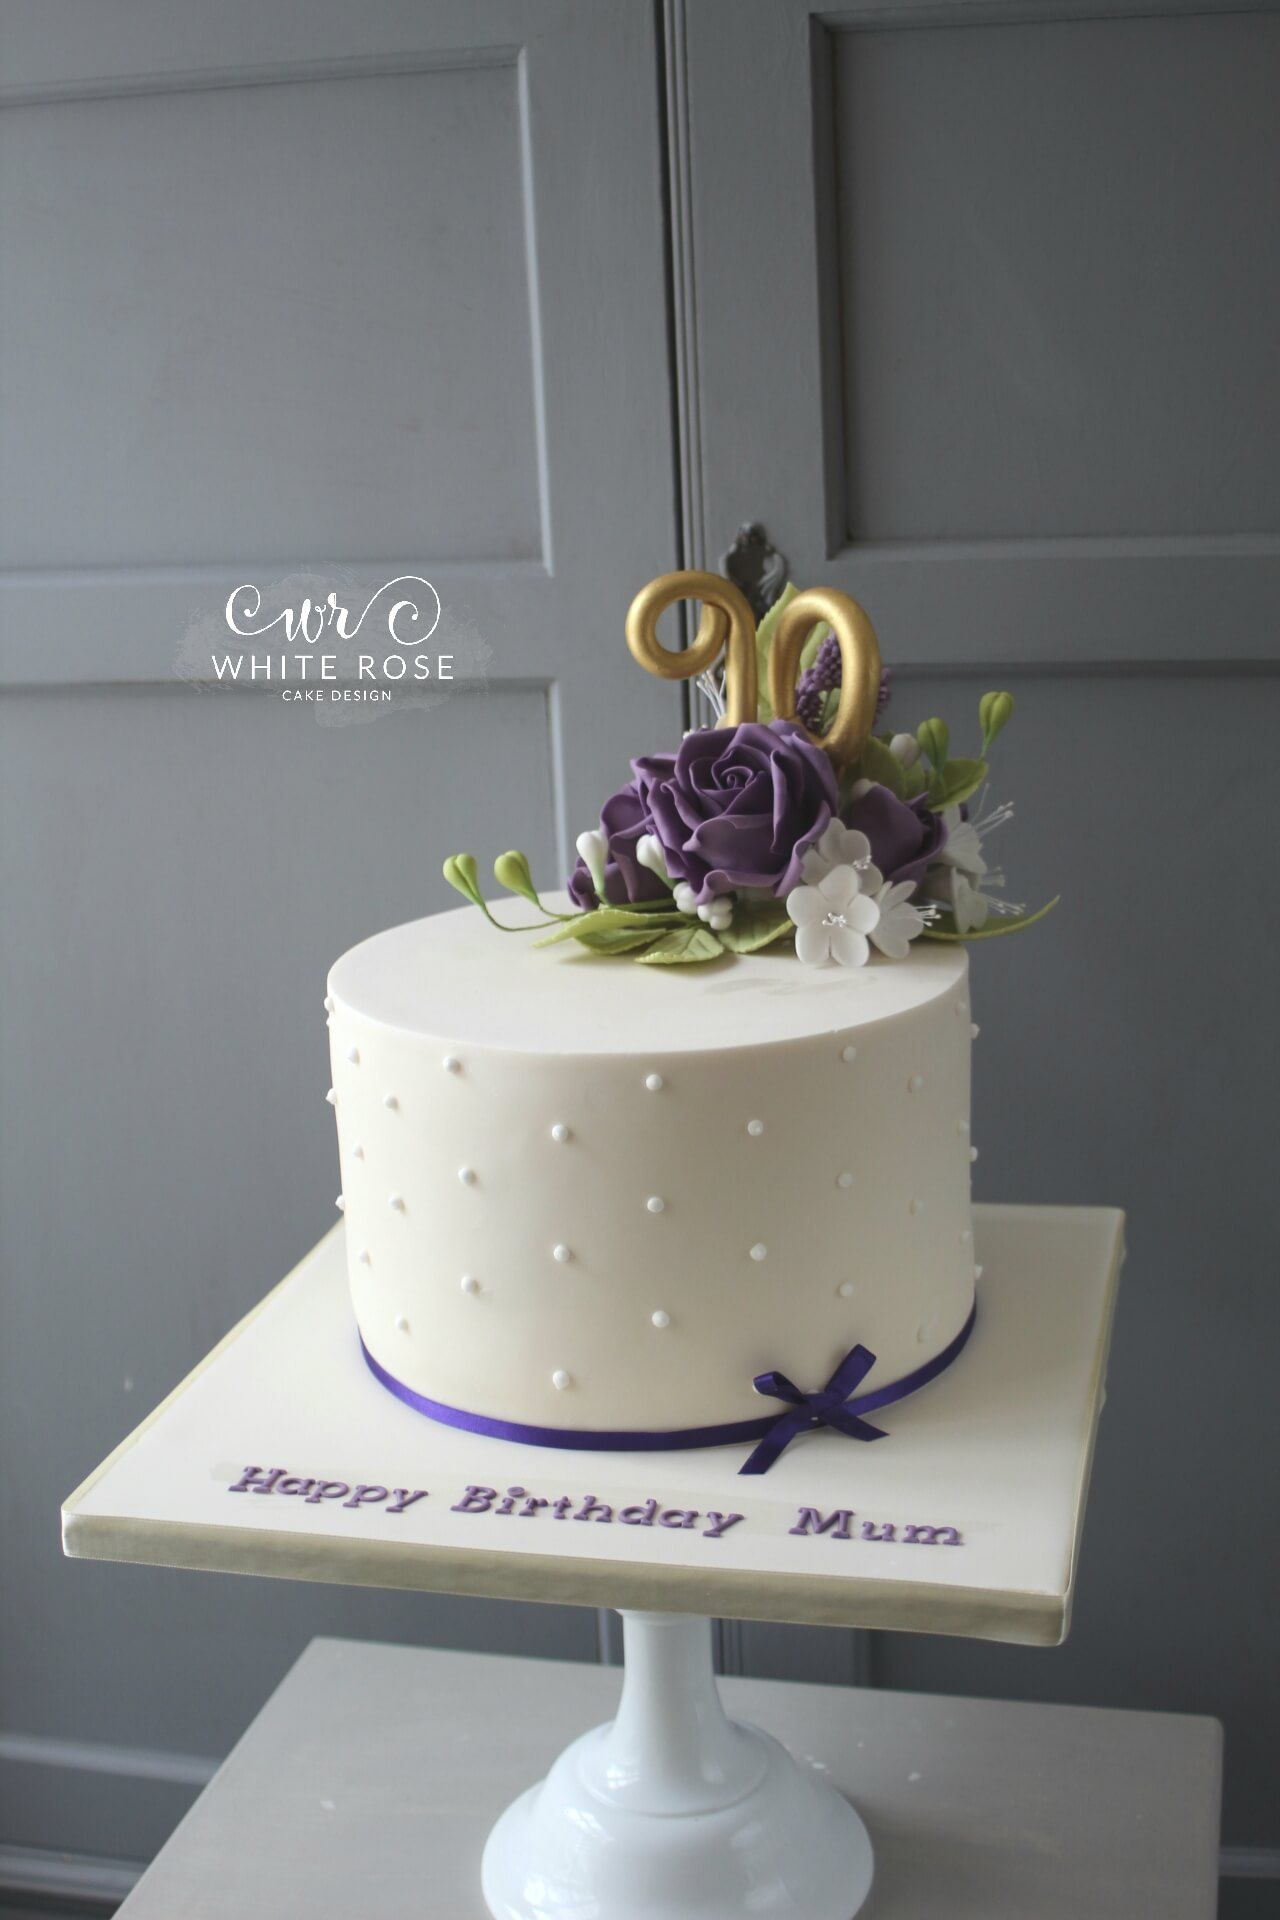 90th birthday cake with purple flowers by white rose cake design 90th birthday cake with purple flowers by white rose cake design west yorkshire cake maker izmirmasajfo